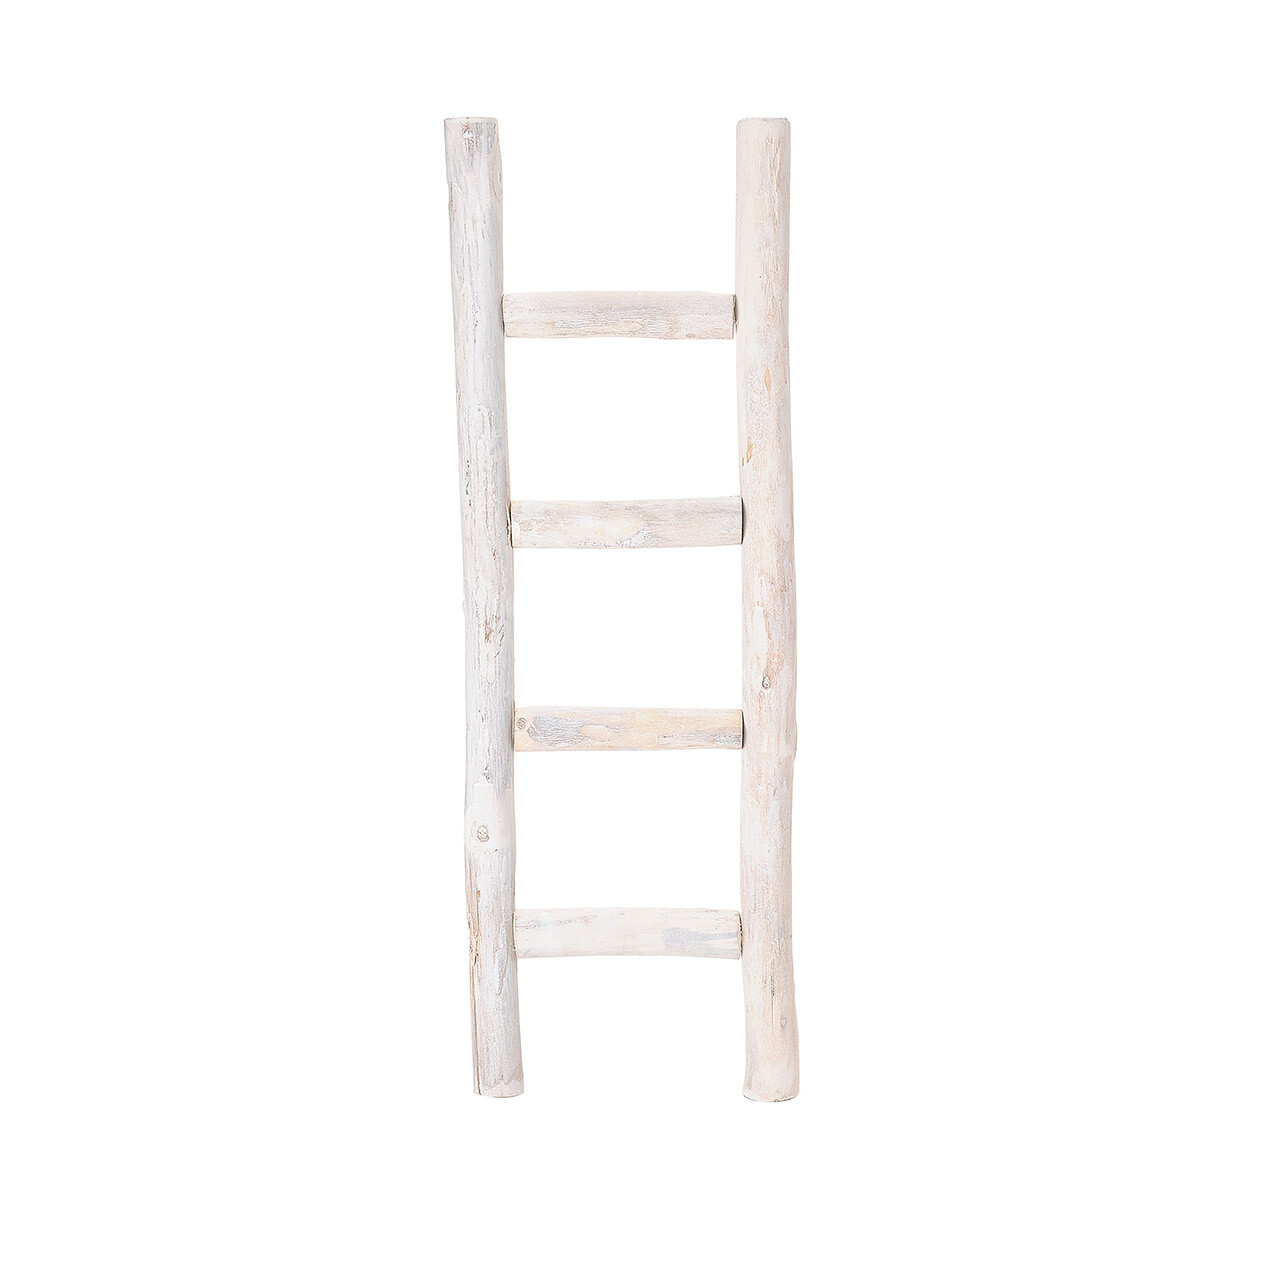 White Wood Ladder Display Tools Furniture Natural Base Import Japanese Products At Wholesale Prices Super Delivery